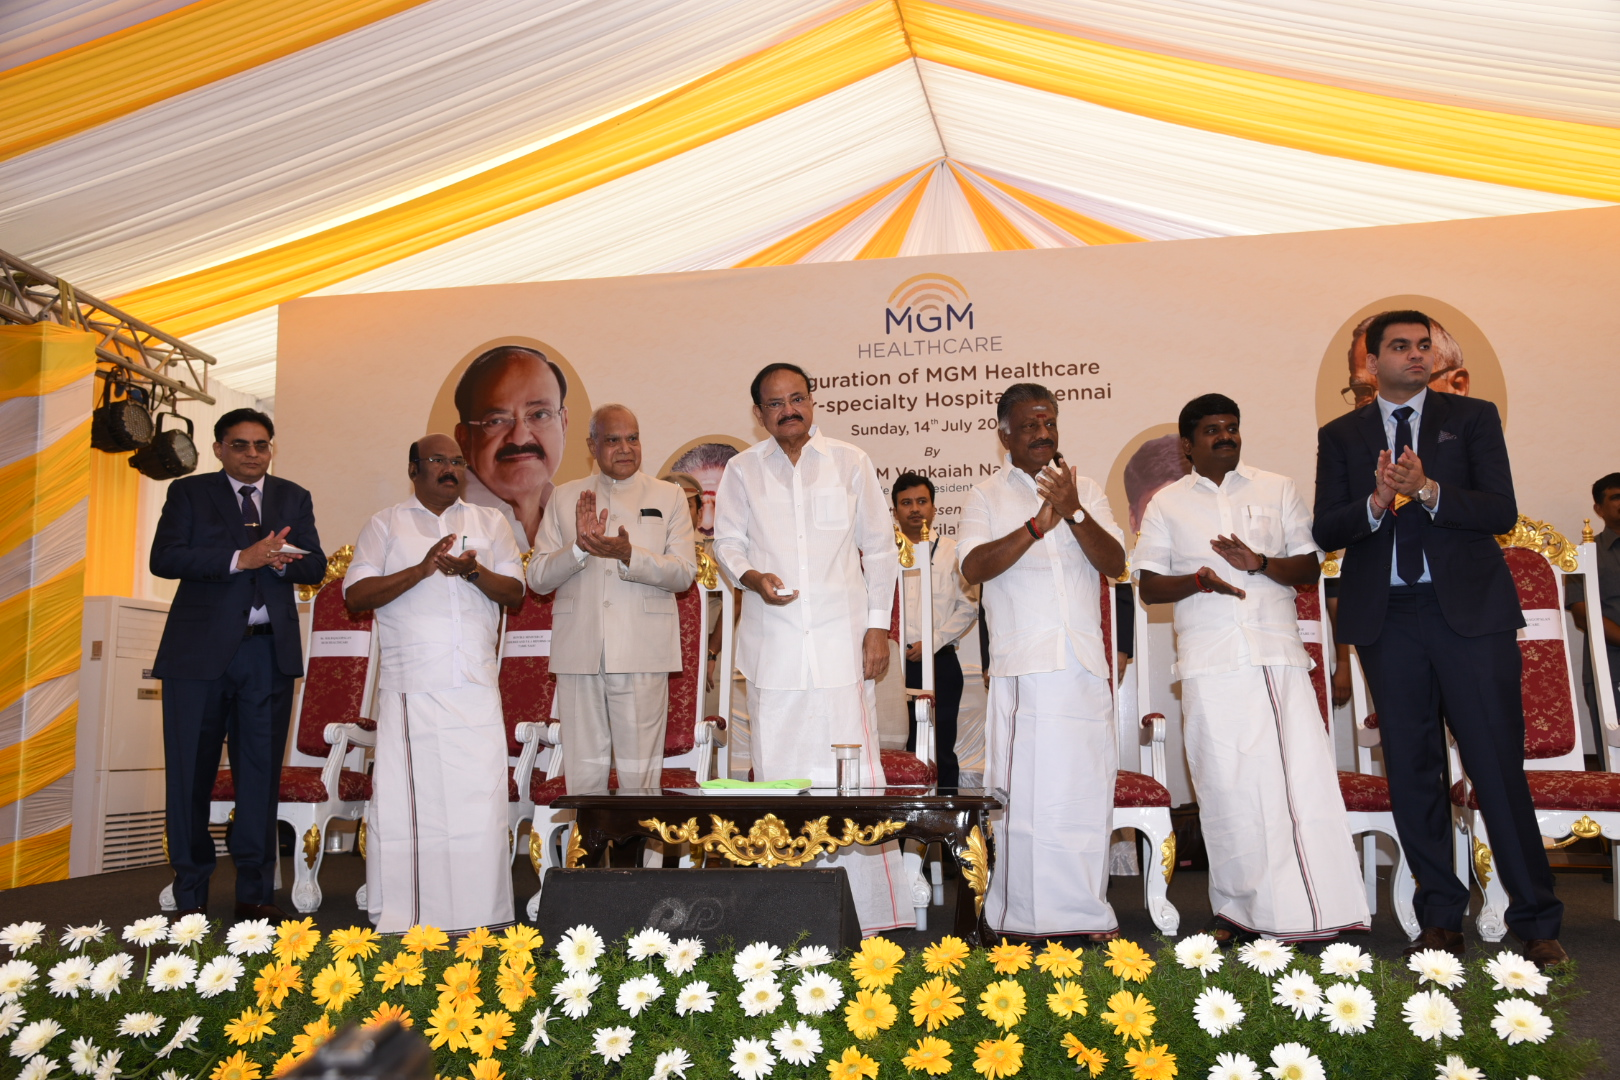 The Vice President, Shri M. Venkaiah Naidu inaugurating MGM Healthcare Super Specialty Hospital, in Chennai on July 14, 2019. The Governor of Tamil Nadu, Shri Banwarilal Purohit, the Deputy Chief Minister of Tamil Nadu, Shri O. Panneerselvam, the Minister for Health and Family Welfare, Government of Tamil Nadu, Dr. C. Vijaya Baskar, the Minister for Fisheries, Shri D. Jayakumar and other dignitaries are also seen.